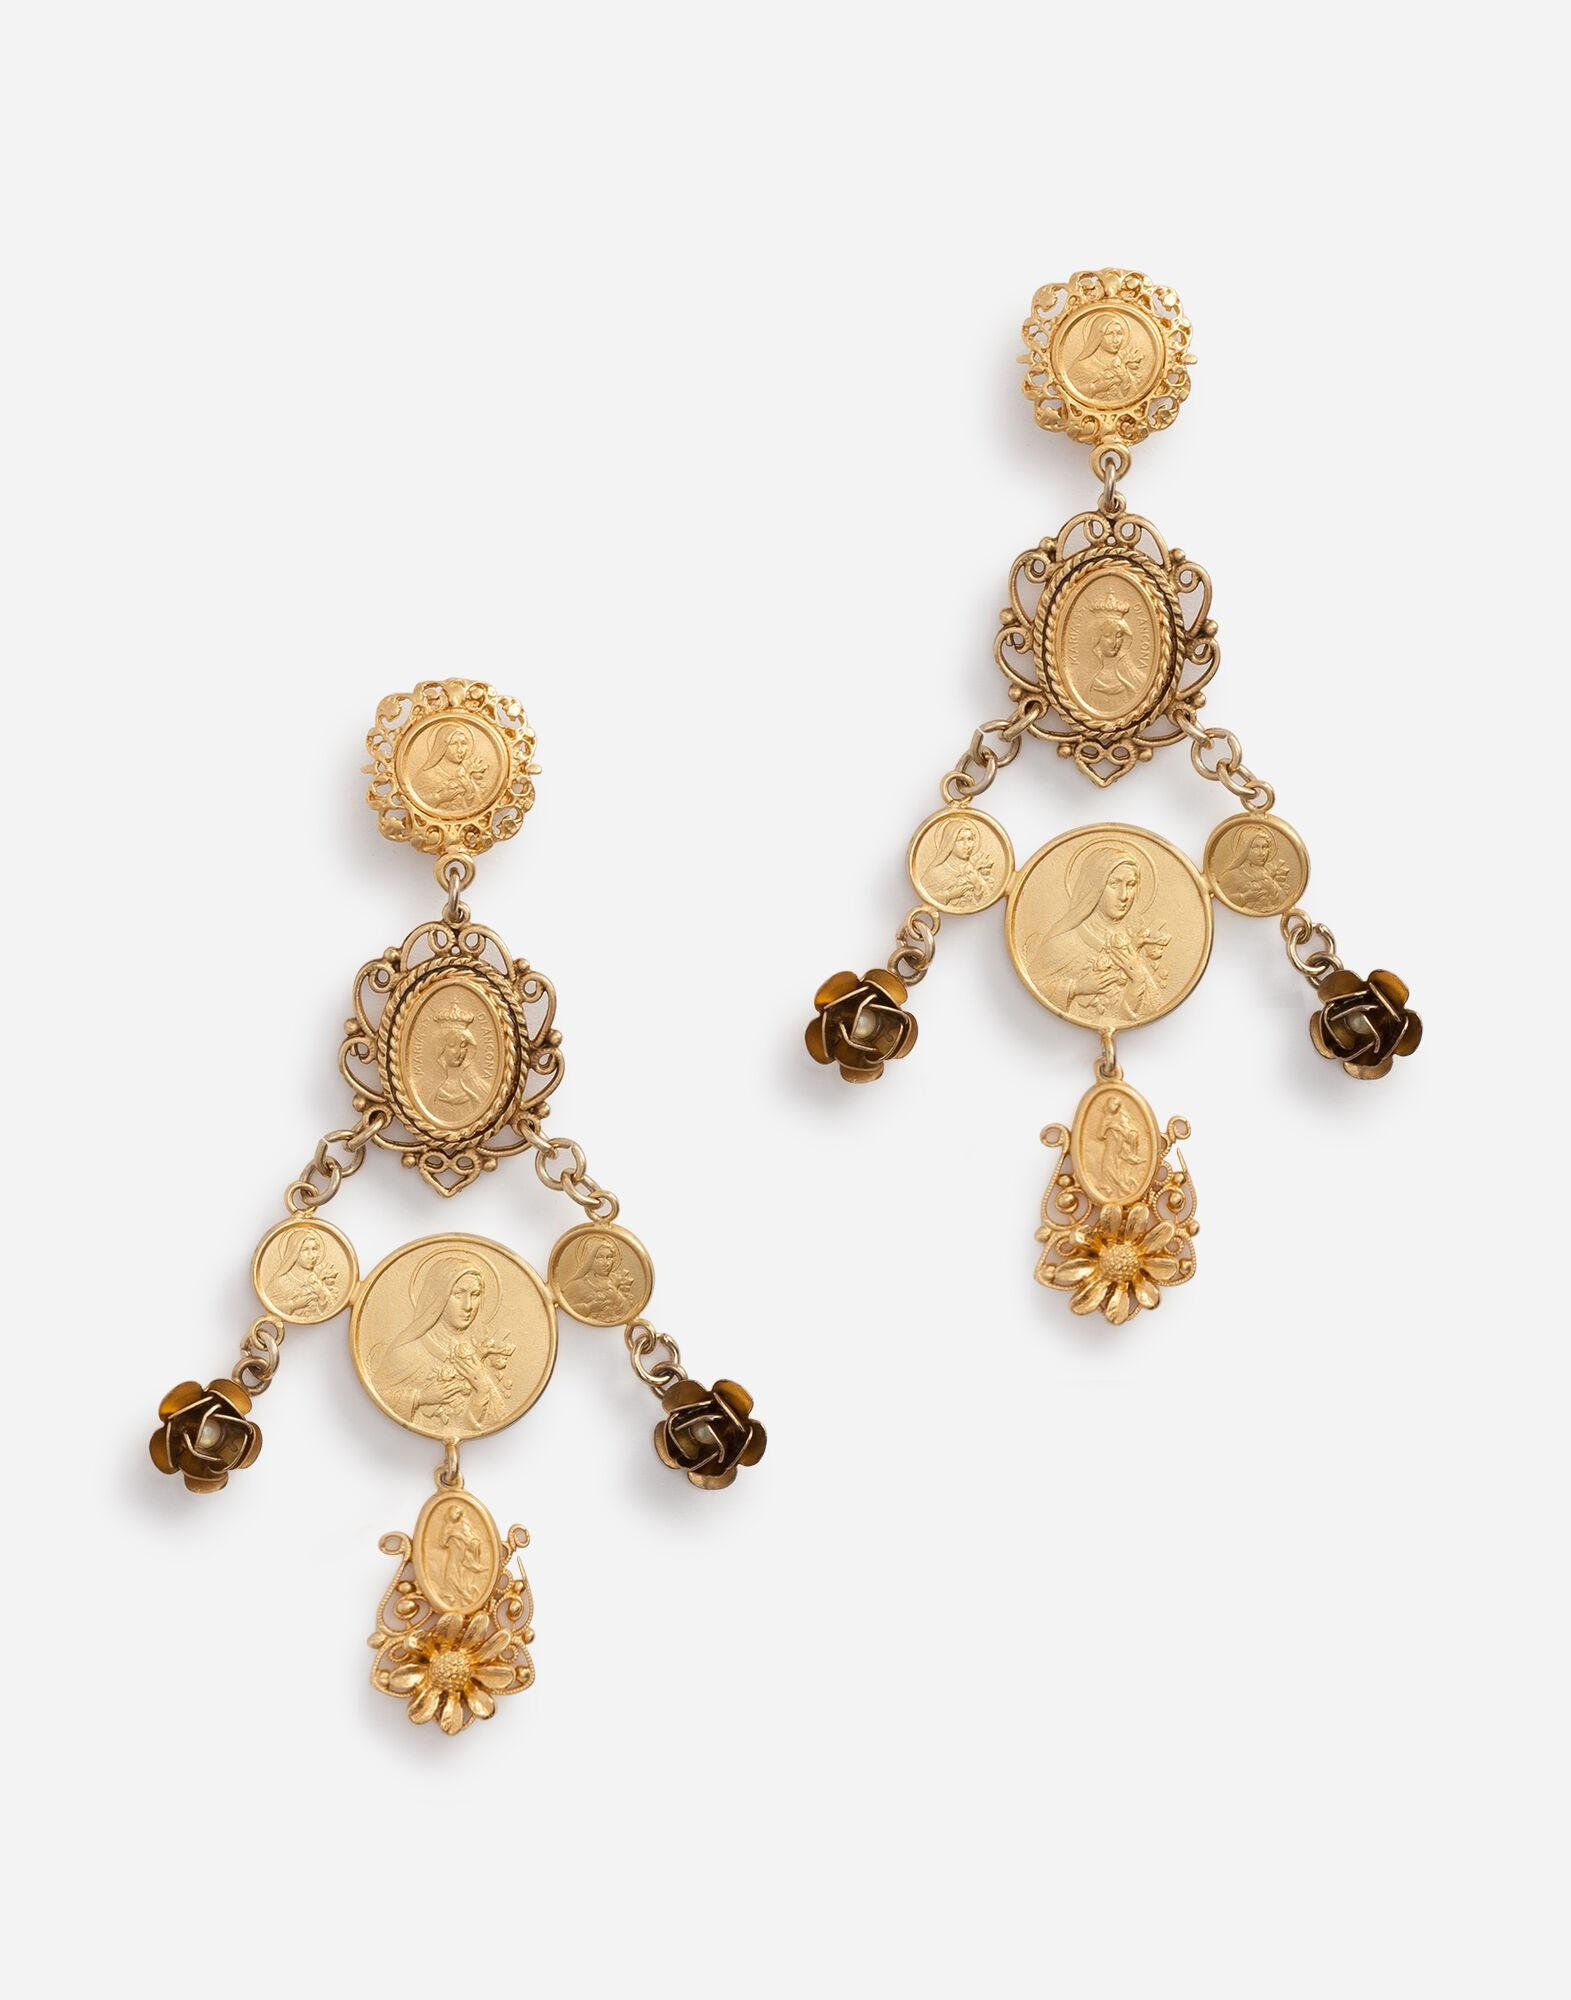 Pendant earrings with votive decorations and small roses